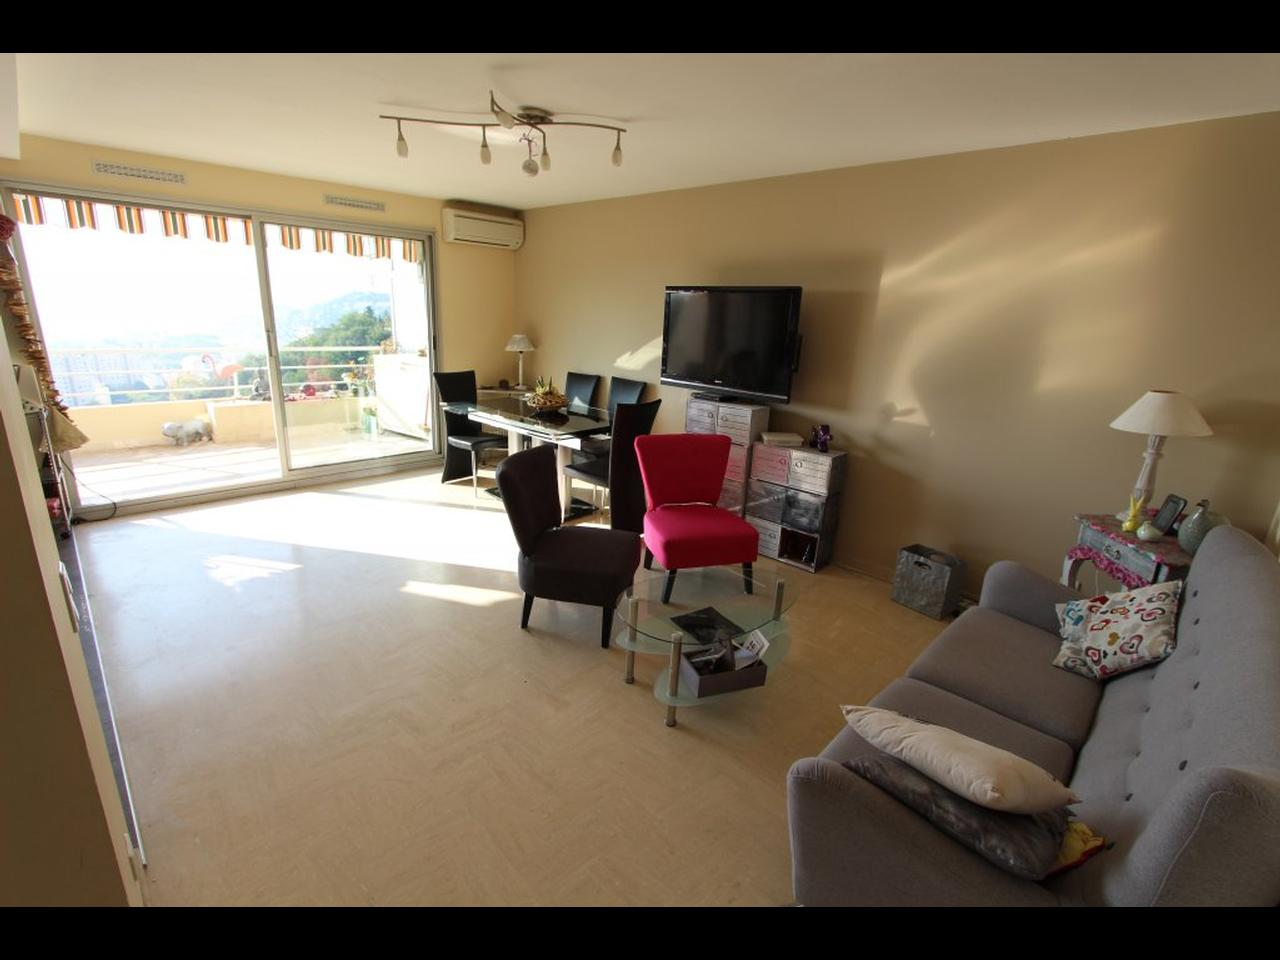 Immobilier nice vue mer appartement nice nice nord 3 pieces avec vue mer a vendre piscine et tennis - Location 3 pieces nice nord ...